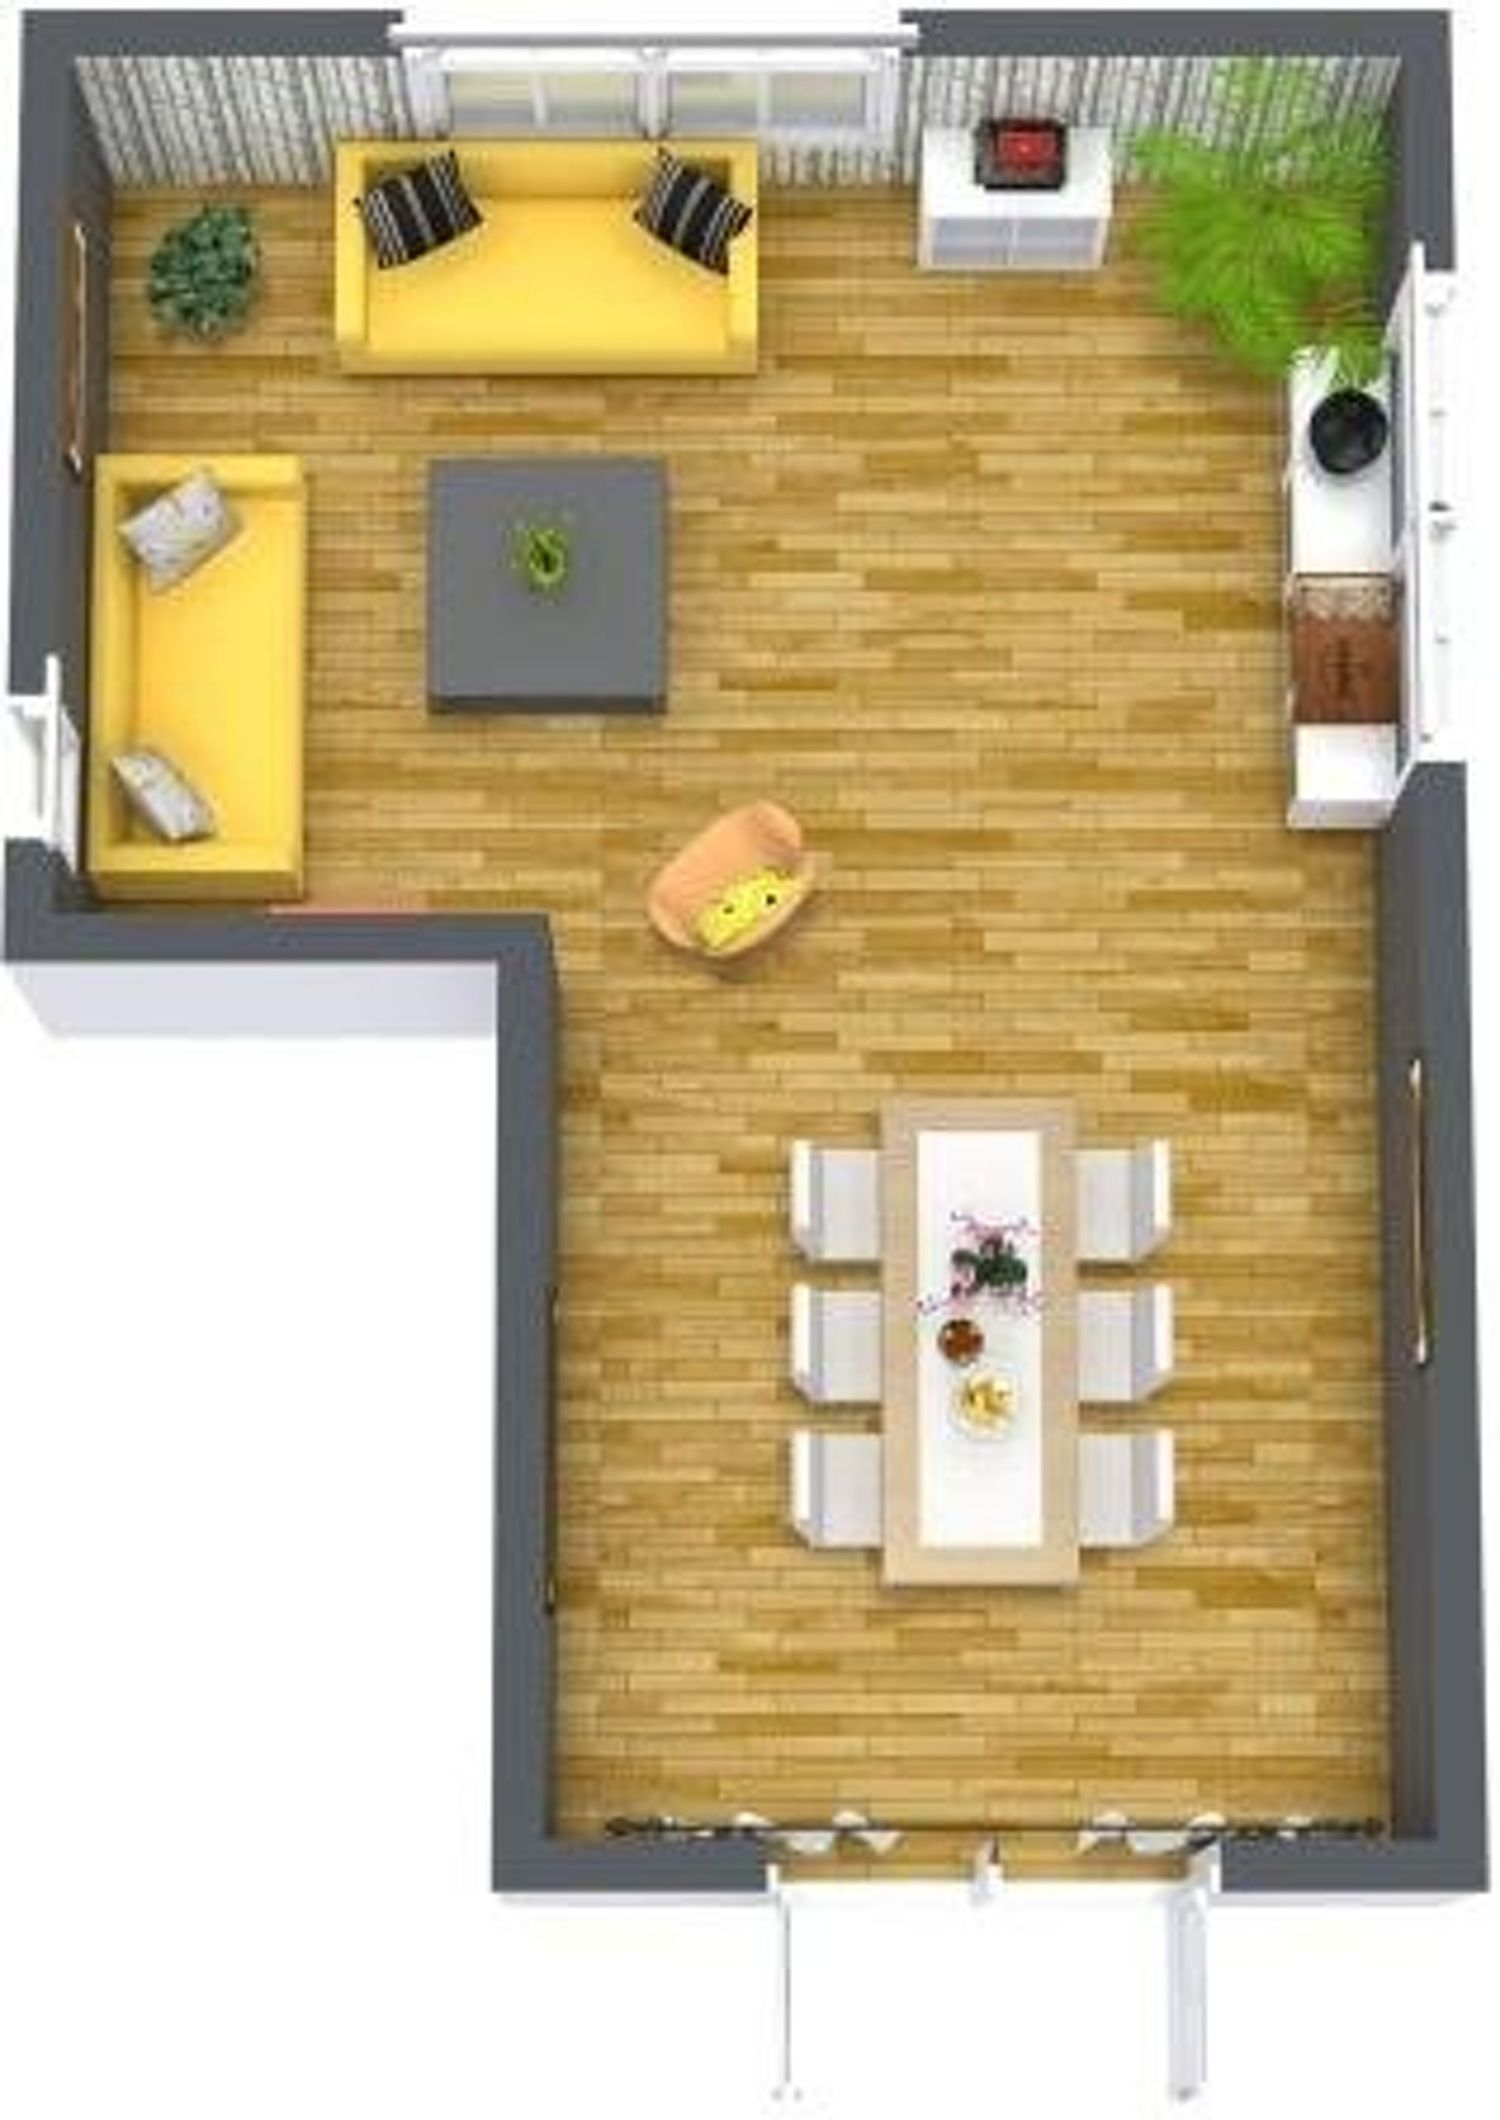 how to optimize typical rental layouts: the l-shaped living/dining